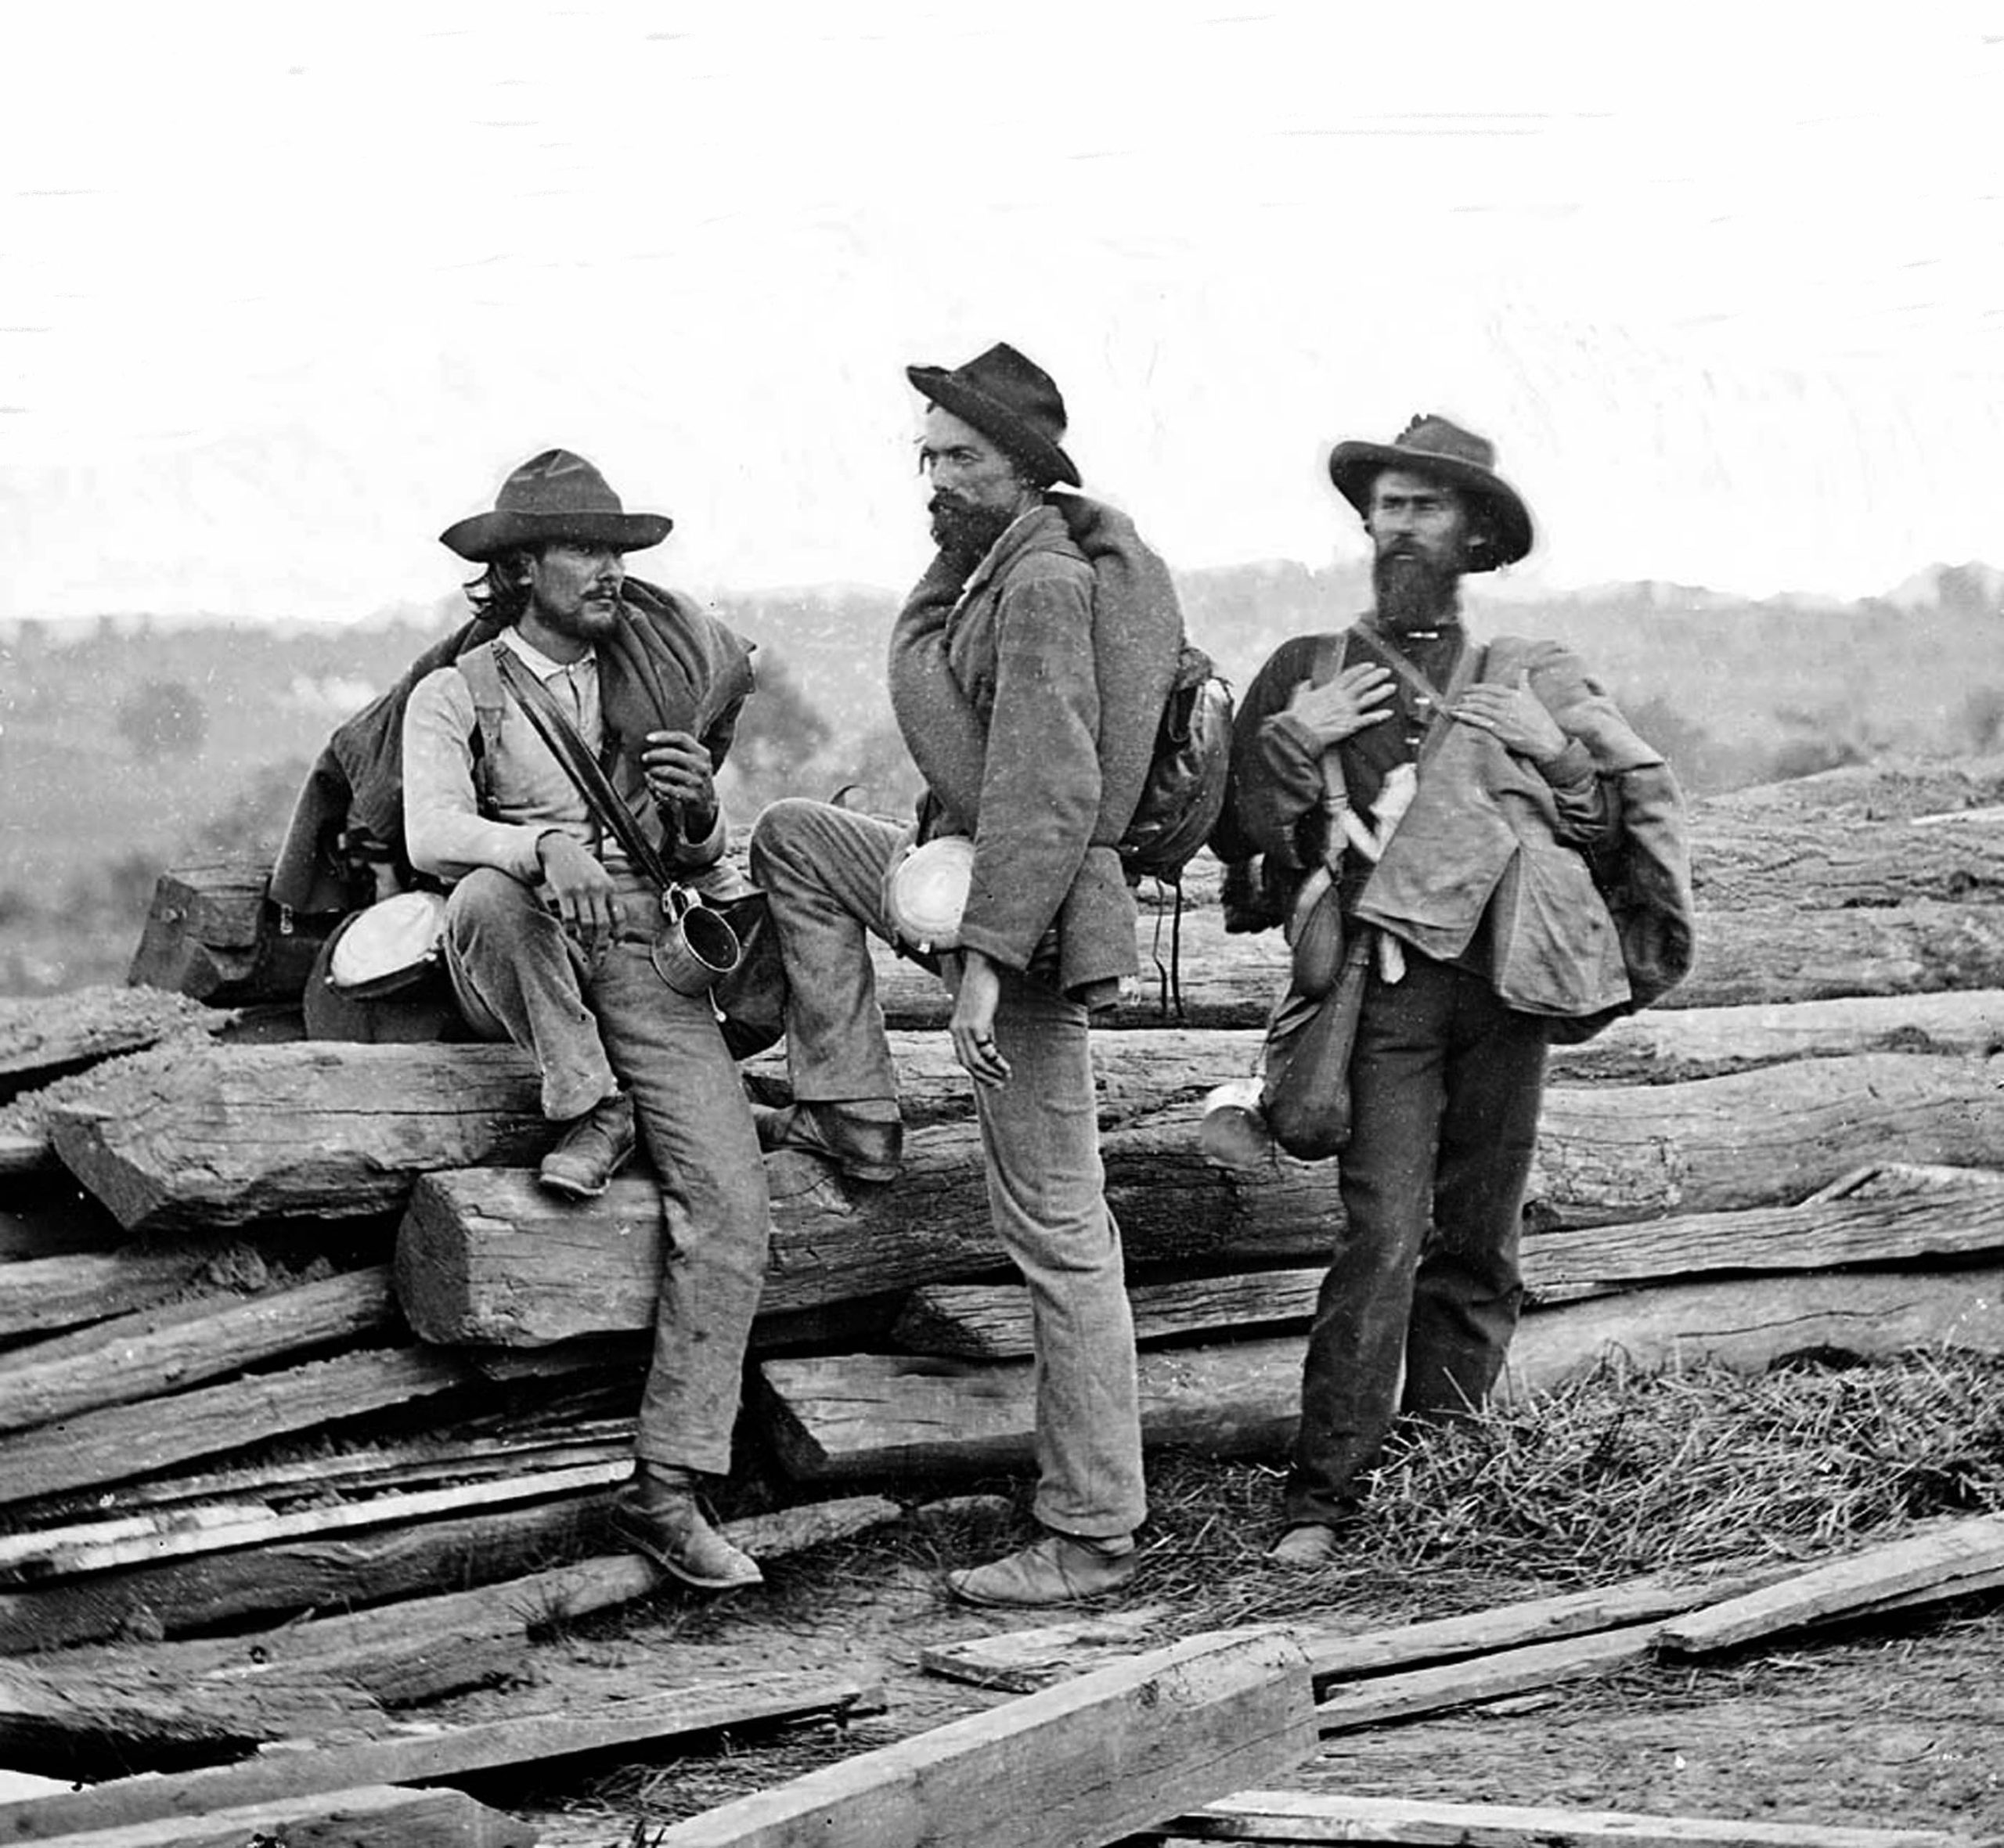 Three Confederate Army prisoners relax after the Battle of Gettysburg, 1863